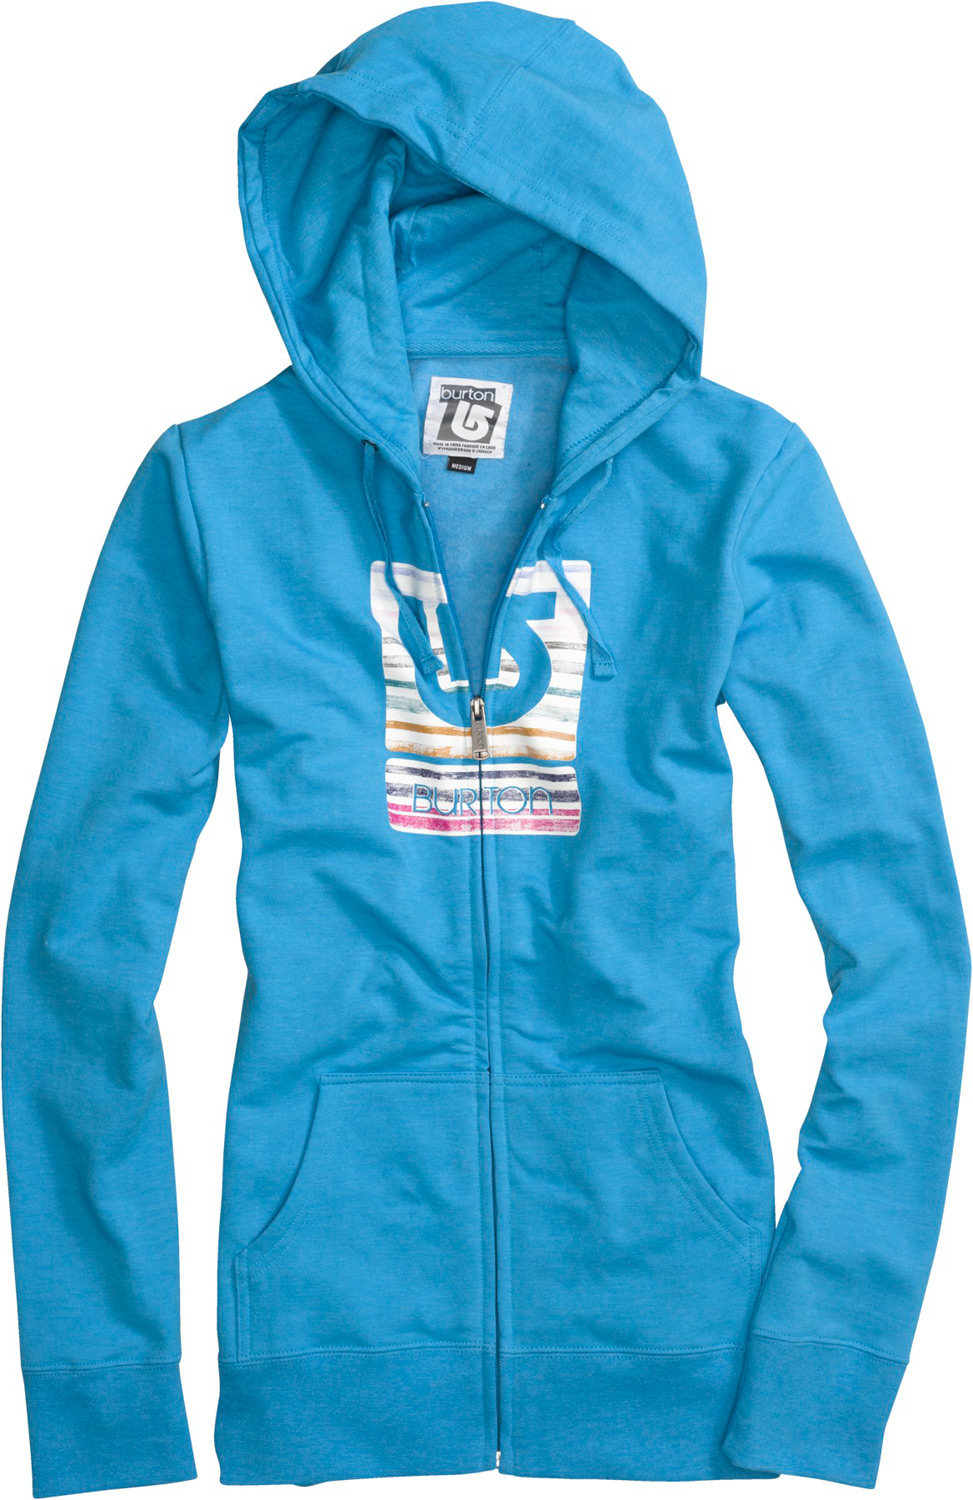 Snowboard Key Features of the Burton Her Logo Palette Stripes Basic Fullzip Hoodie: 85% Cotton, 12% Polyester, 3% Spandex, 280G Fleece Screen Print at Chest Regular Fit - $55.00